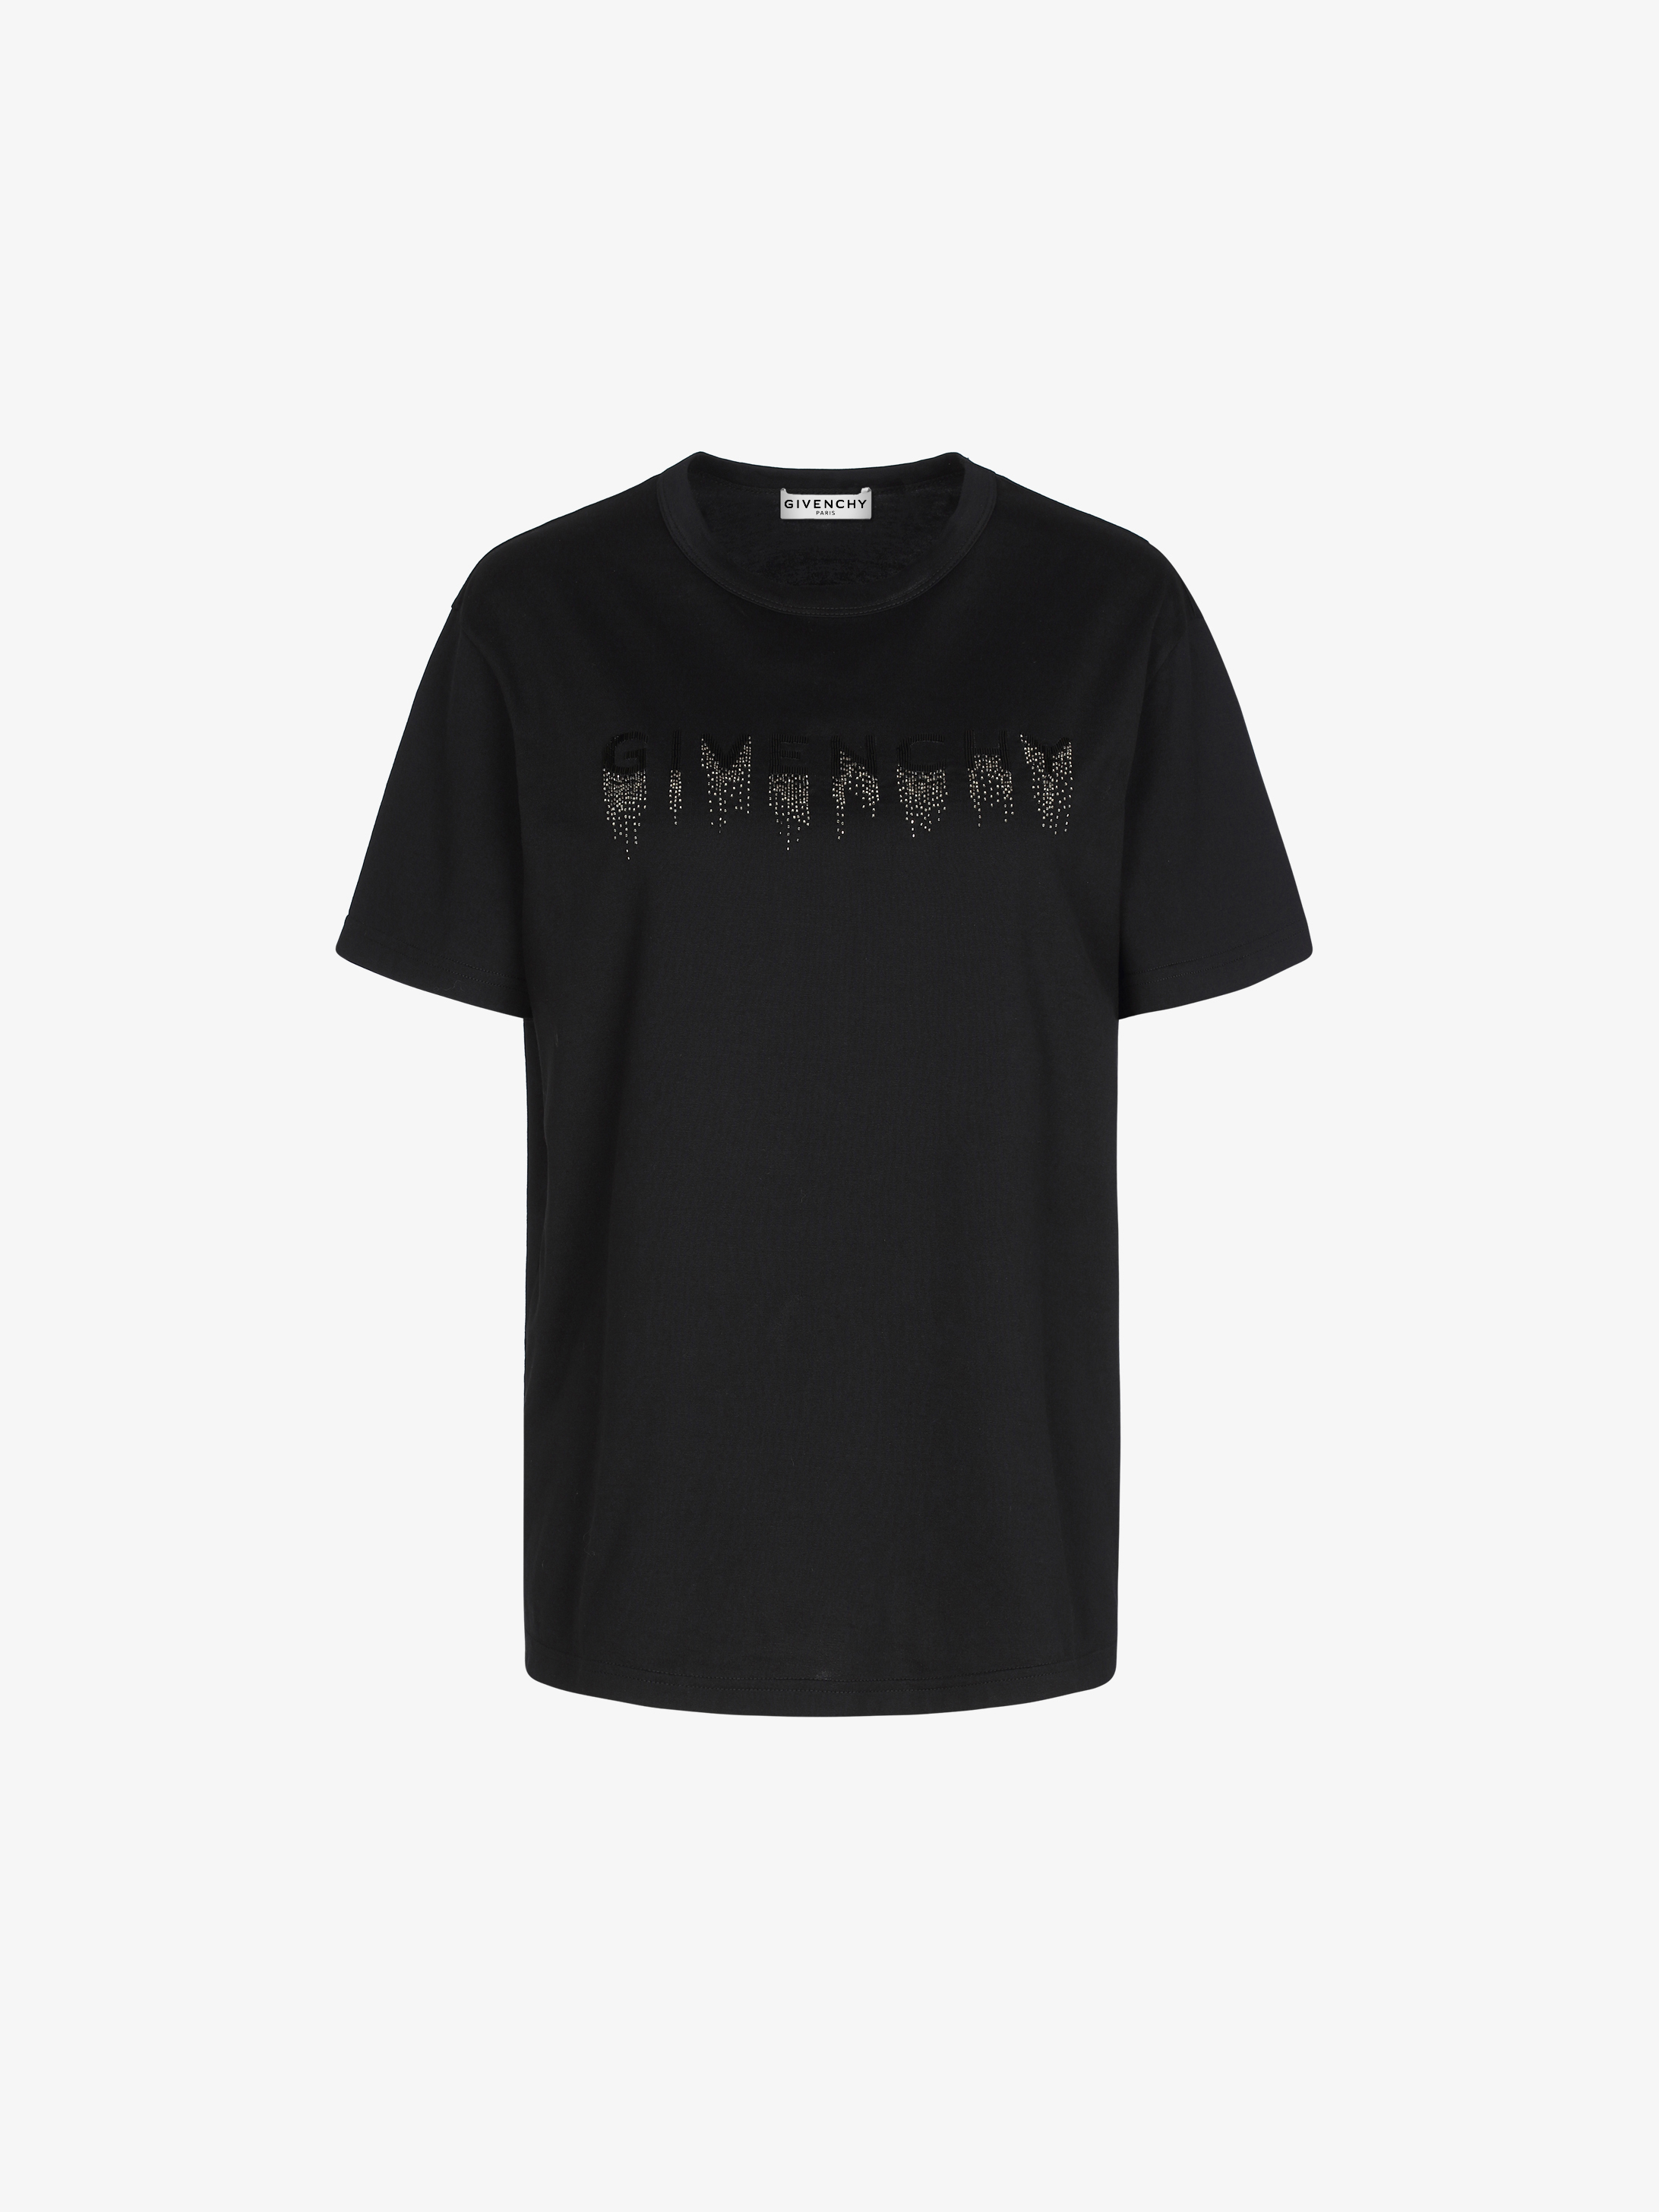 GIVENCHY faded embroidered t-shirt